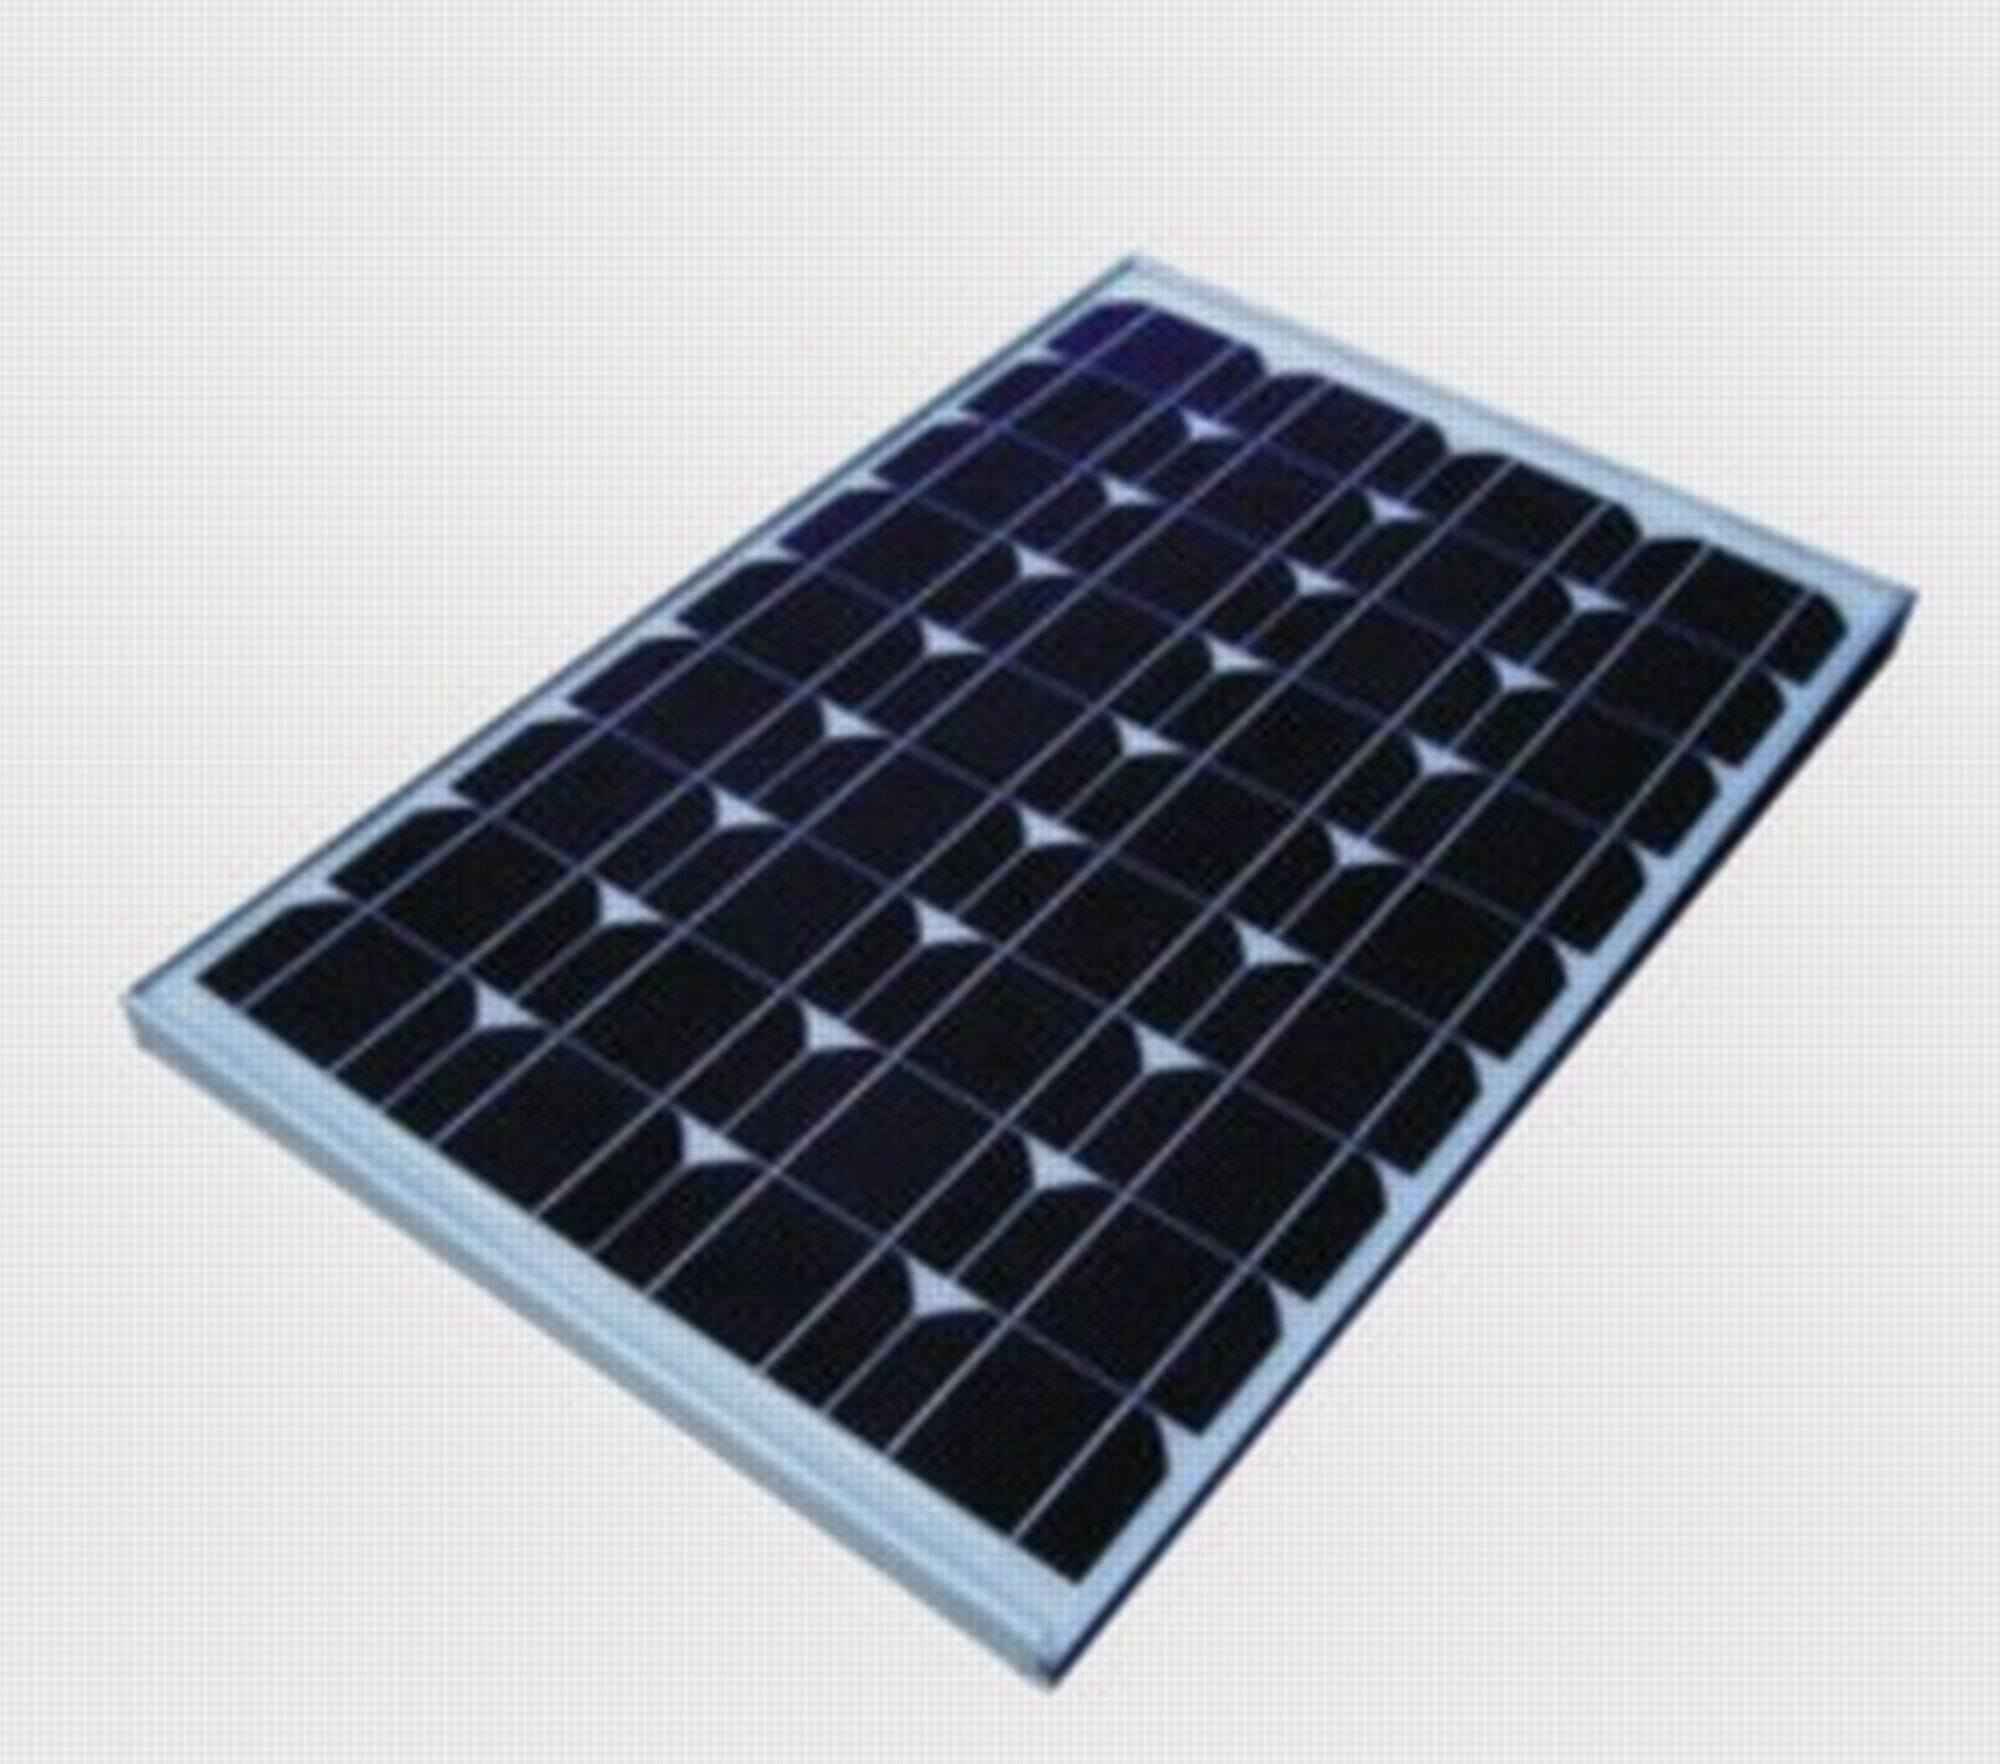 ... 60watts Monocrystalline Solar Panel - China Solar Panel, Solar Panels